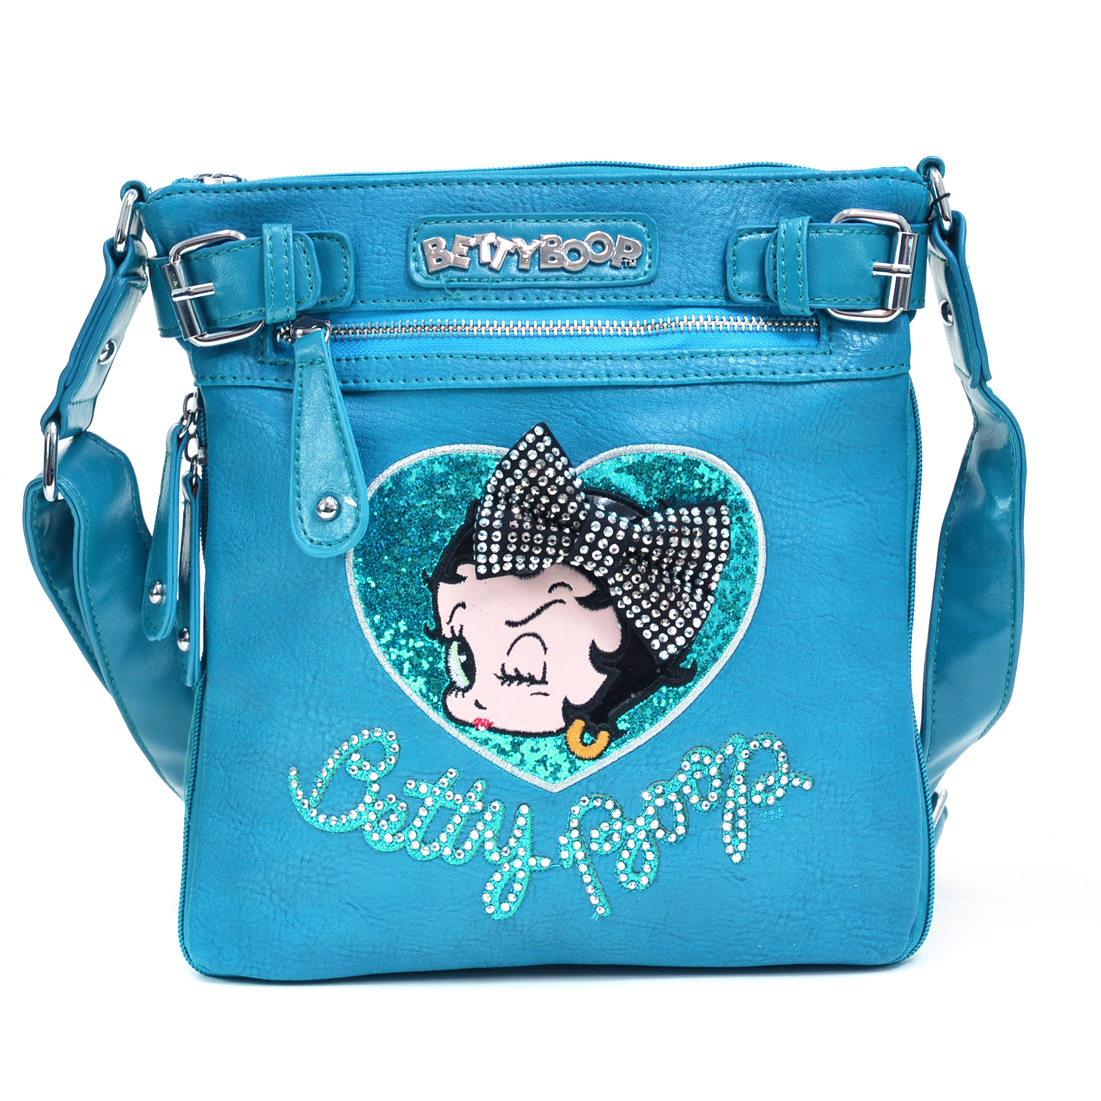 Classic Betty Boop® Messenger Bag w/ Rhinestones & Leather-like